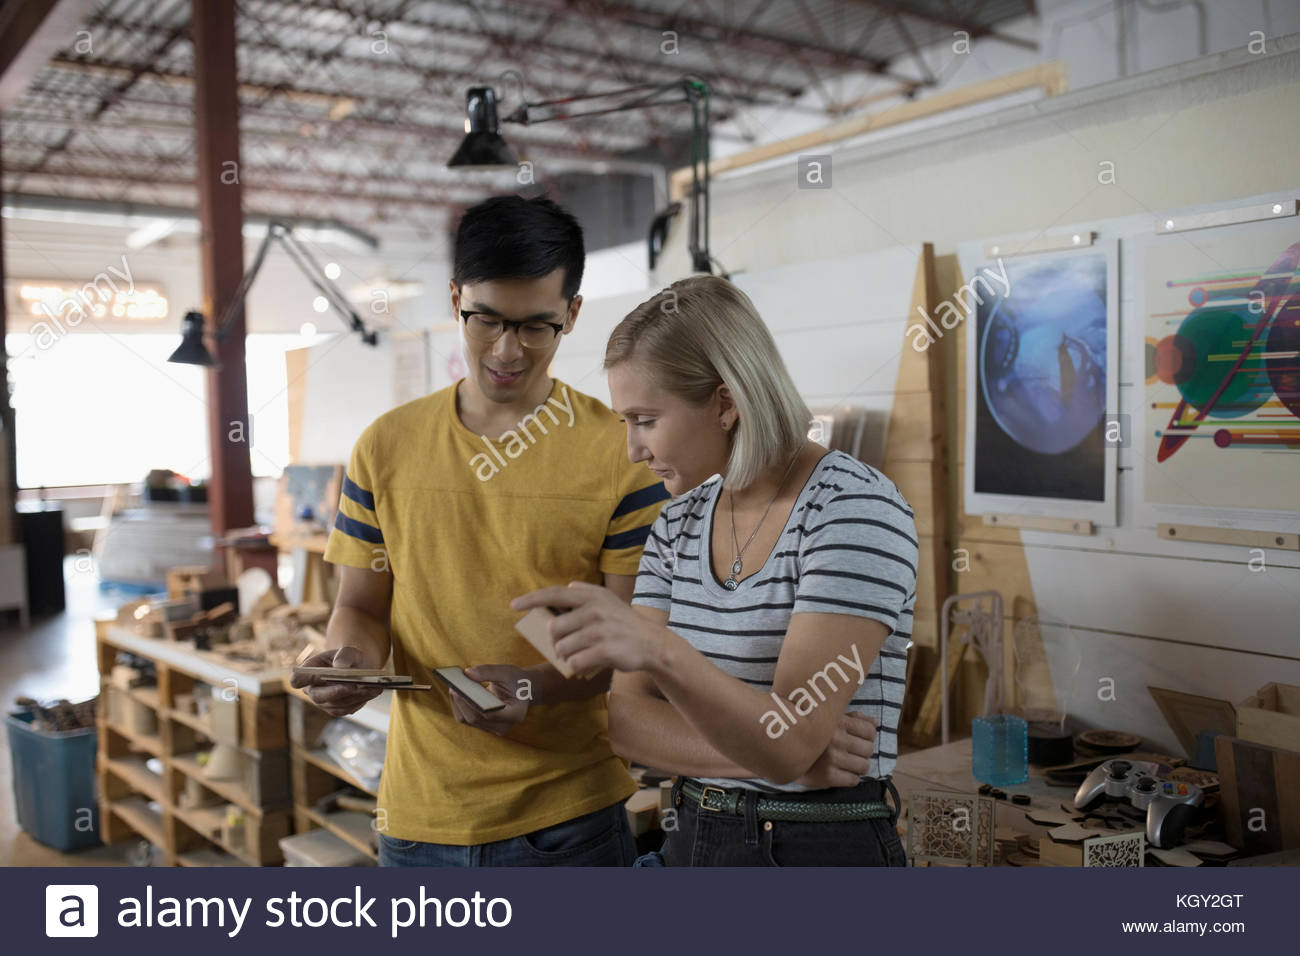 Small business owner craftspeople examining pieces in workshop - Stock Image